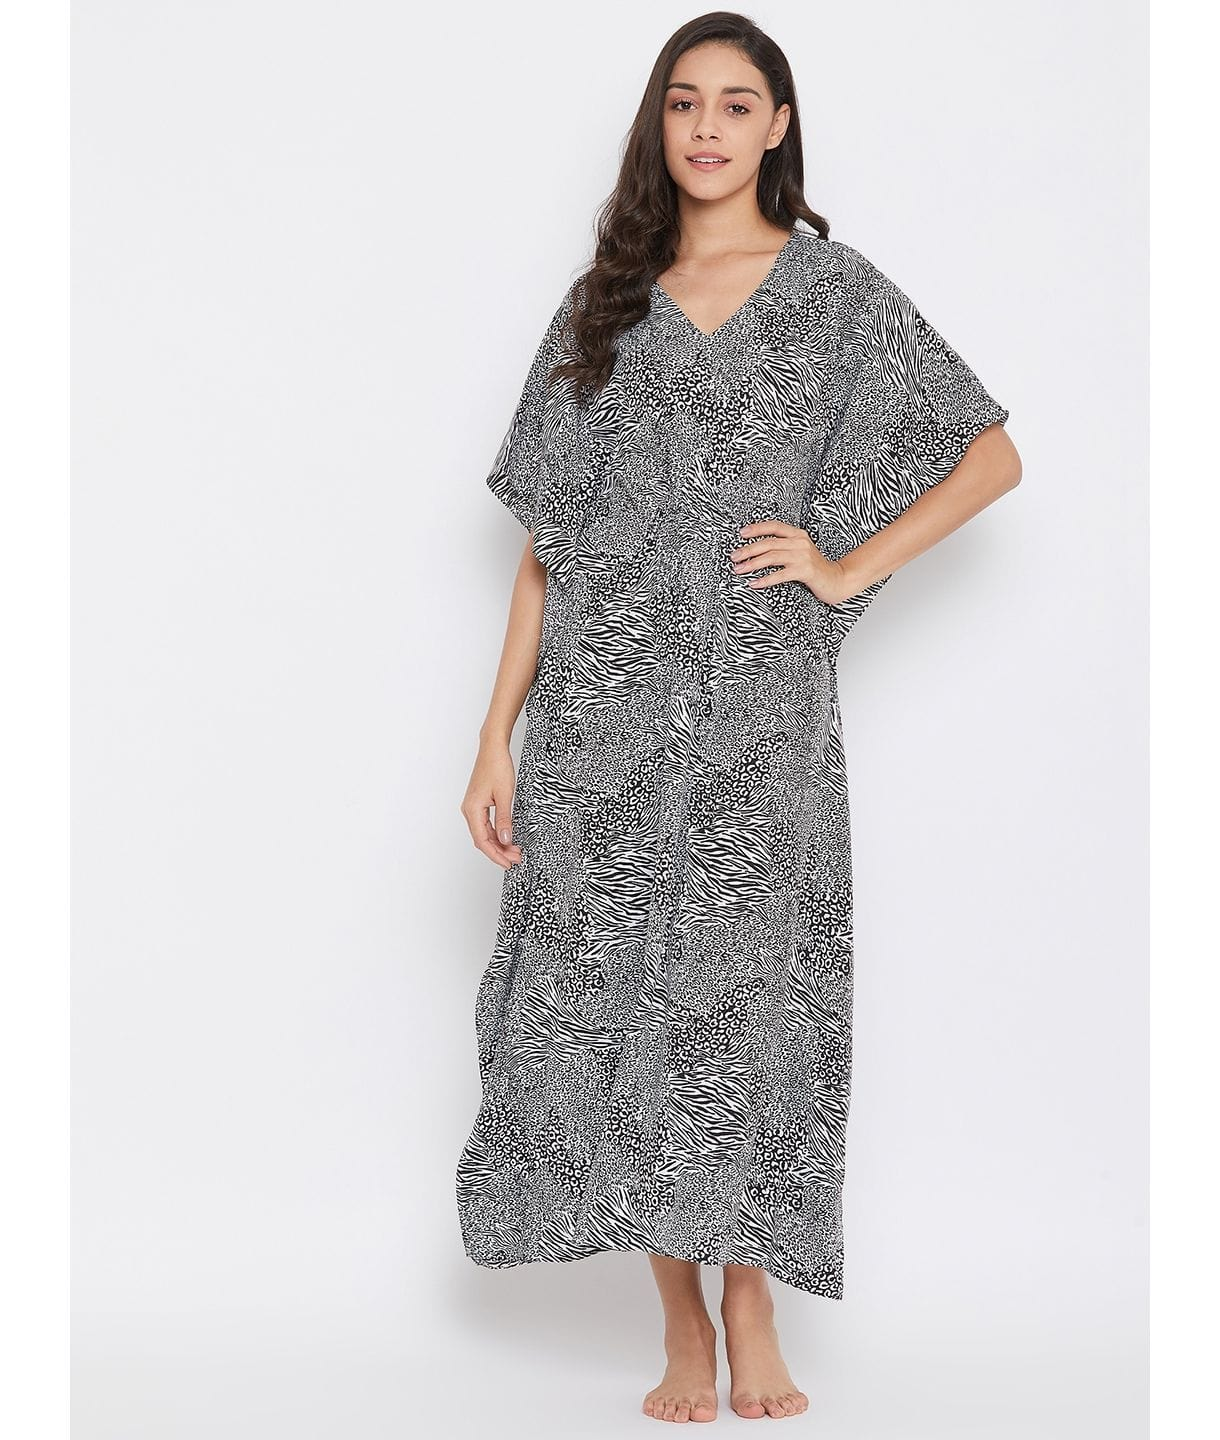 Comfortable Animal Print Kaftan Which Doubles Up As A Nightie